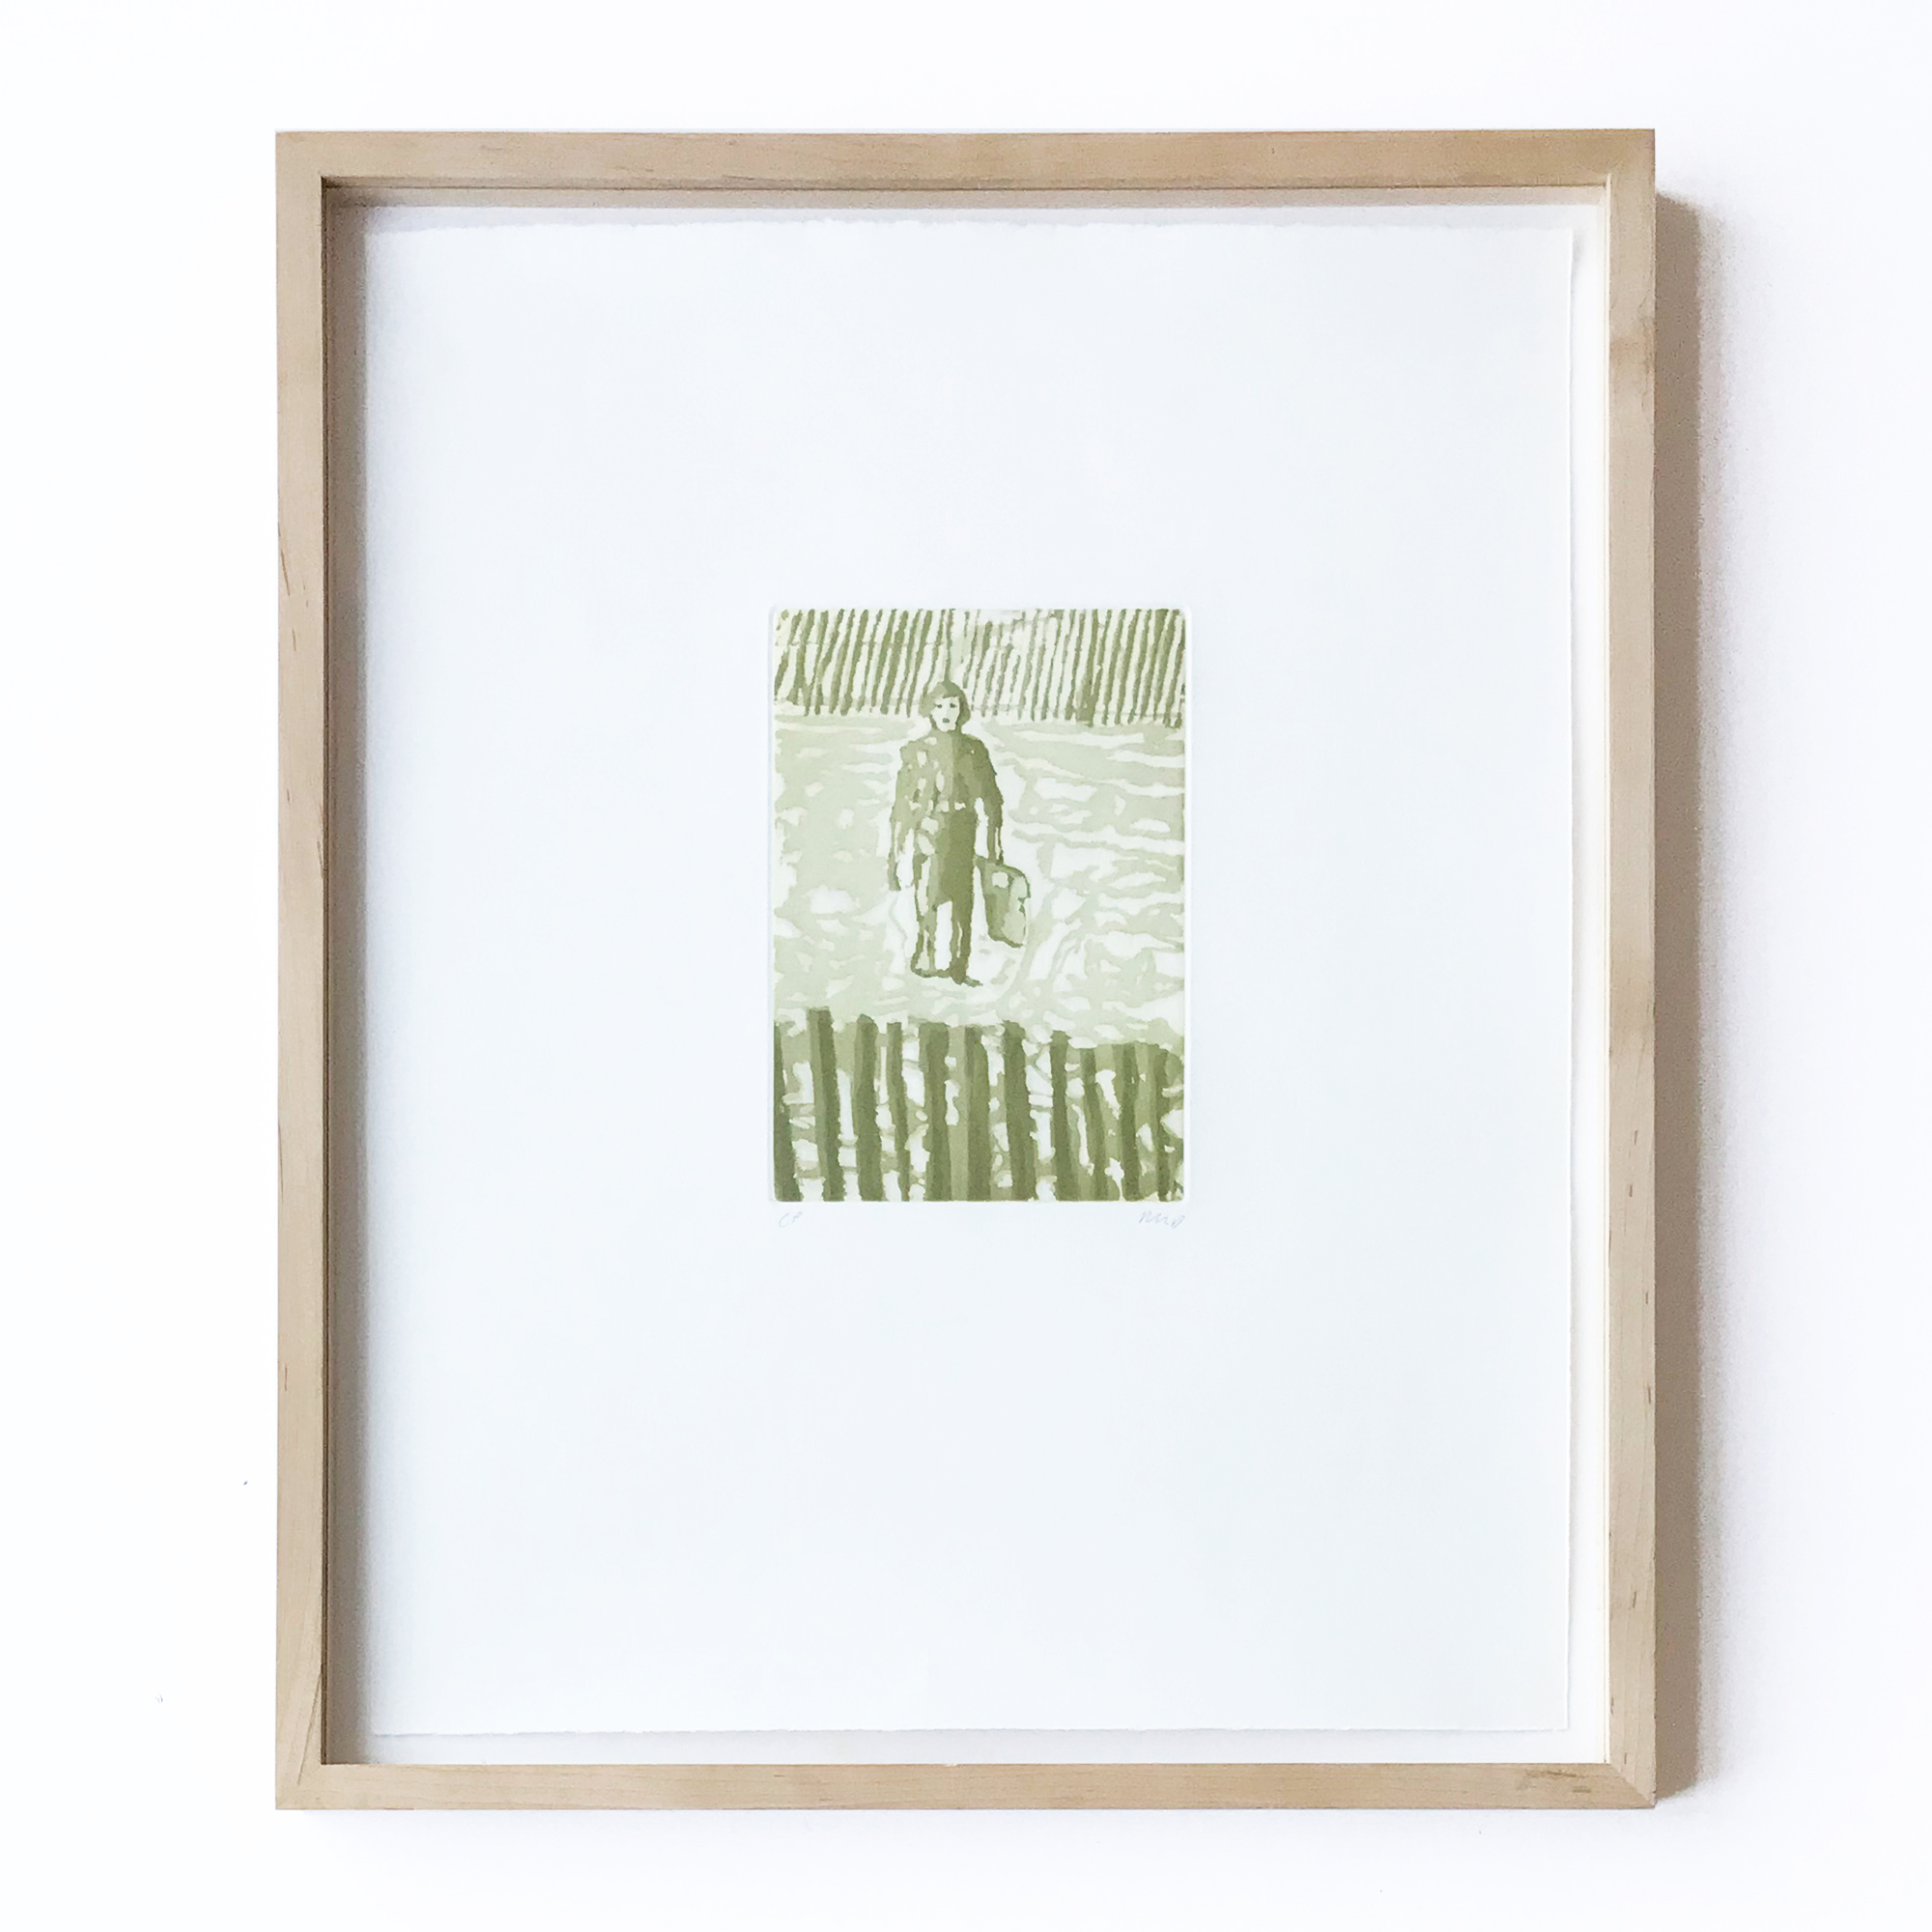 Untitled (from Blizzard '77) by Peter Doig